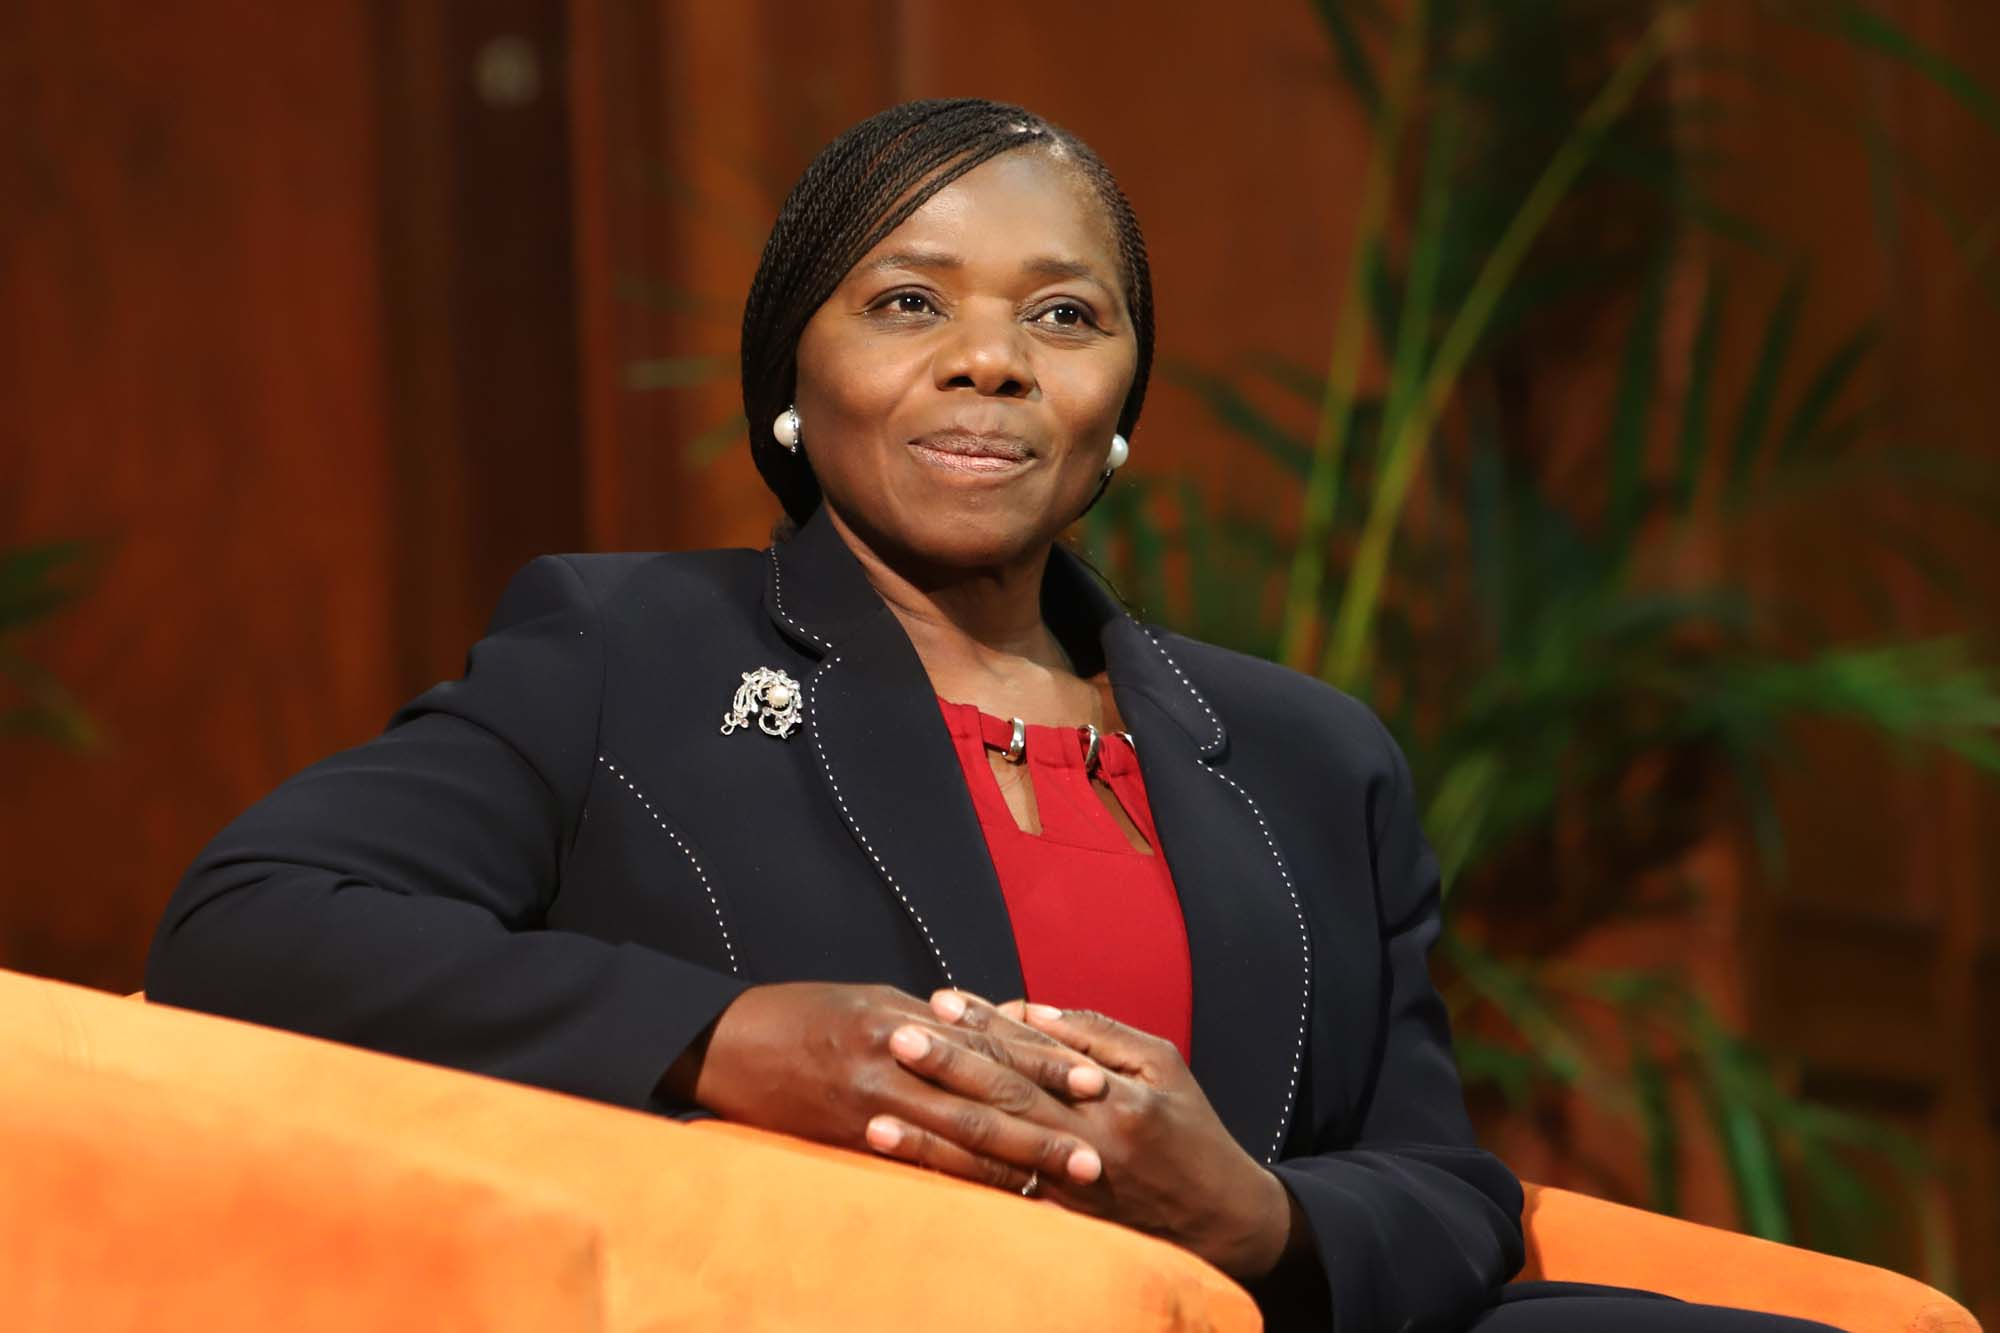 Former public protector Professor Thuli Madonsela addressed the audience at the Vice-Chancellor's Open Lecture on 21 August.